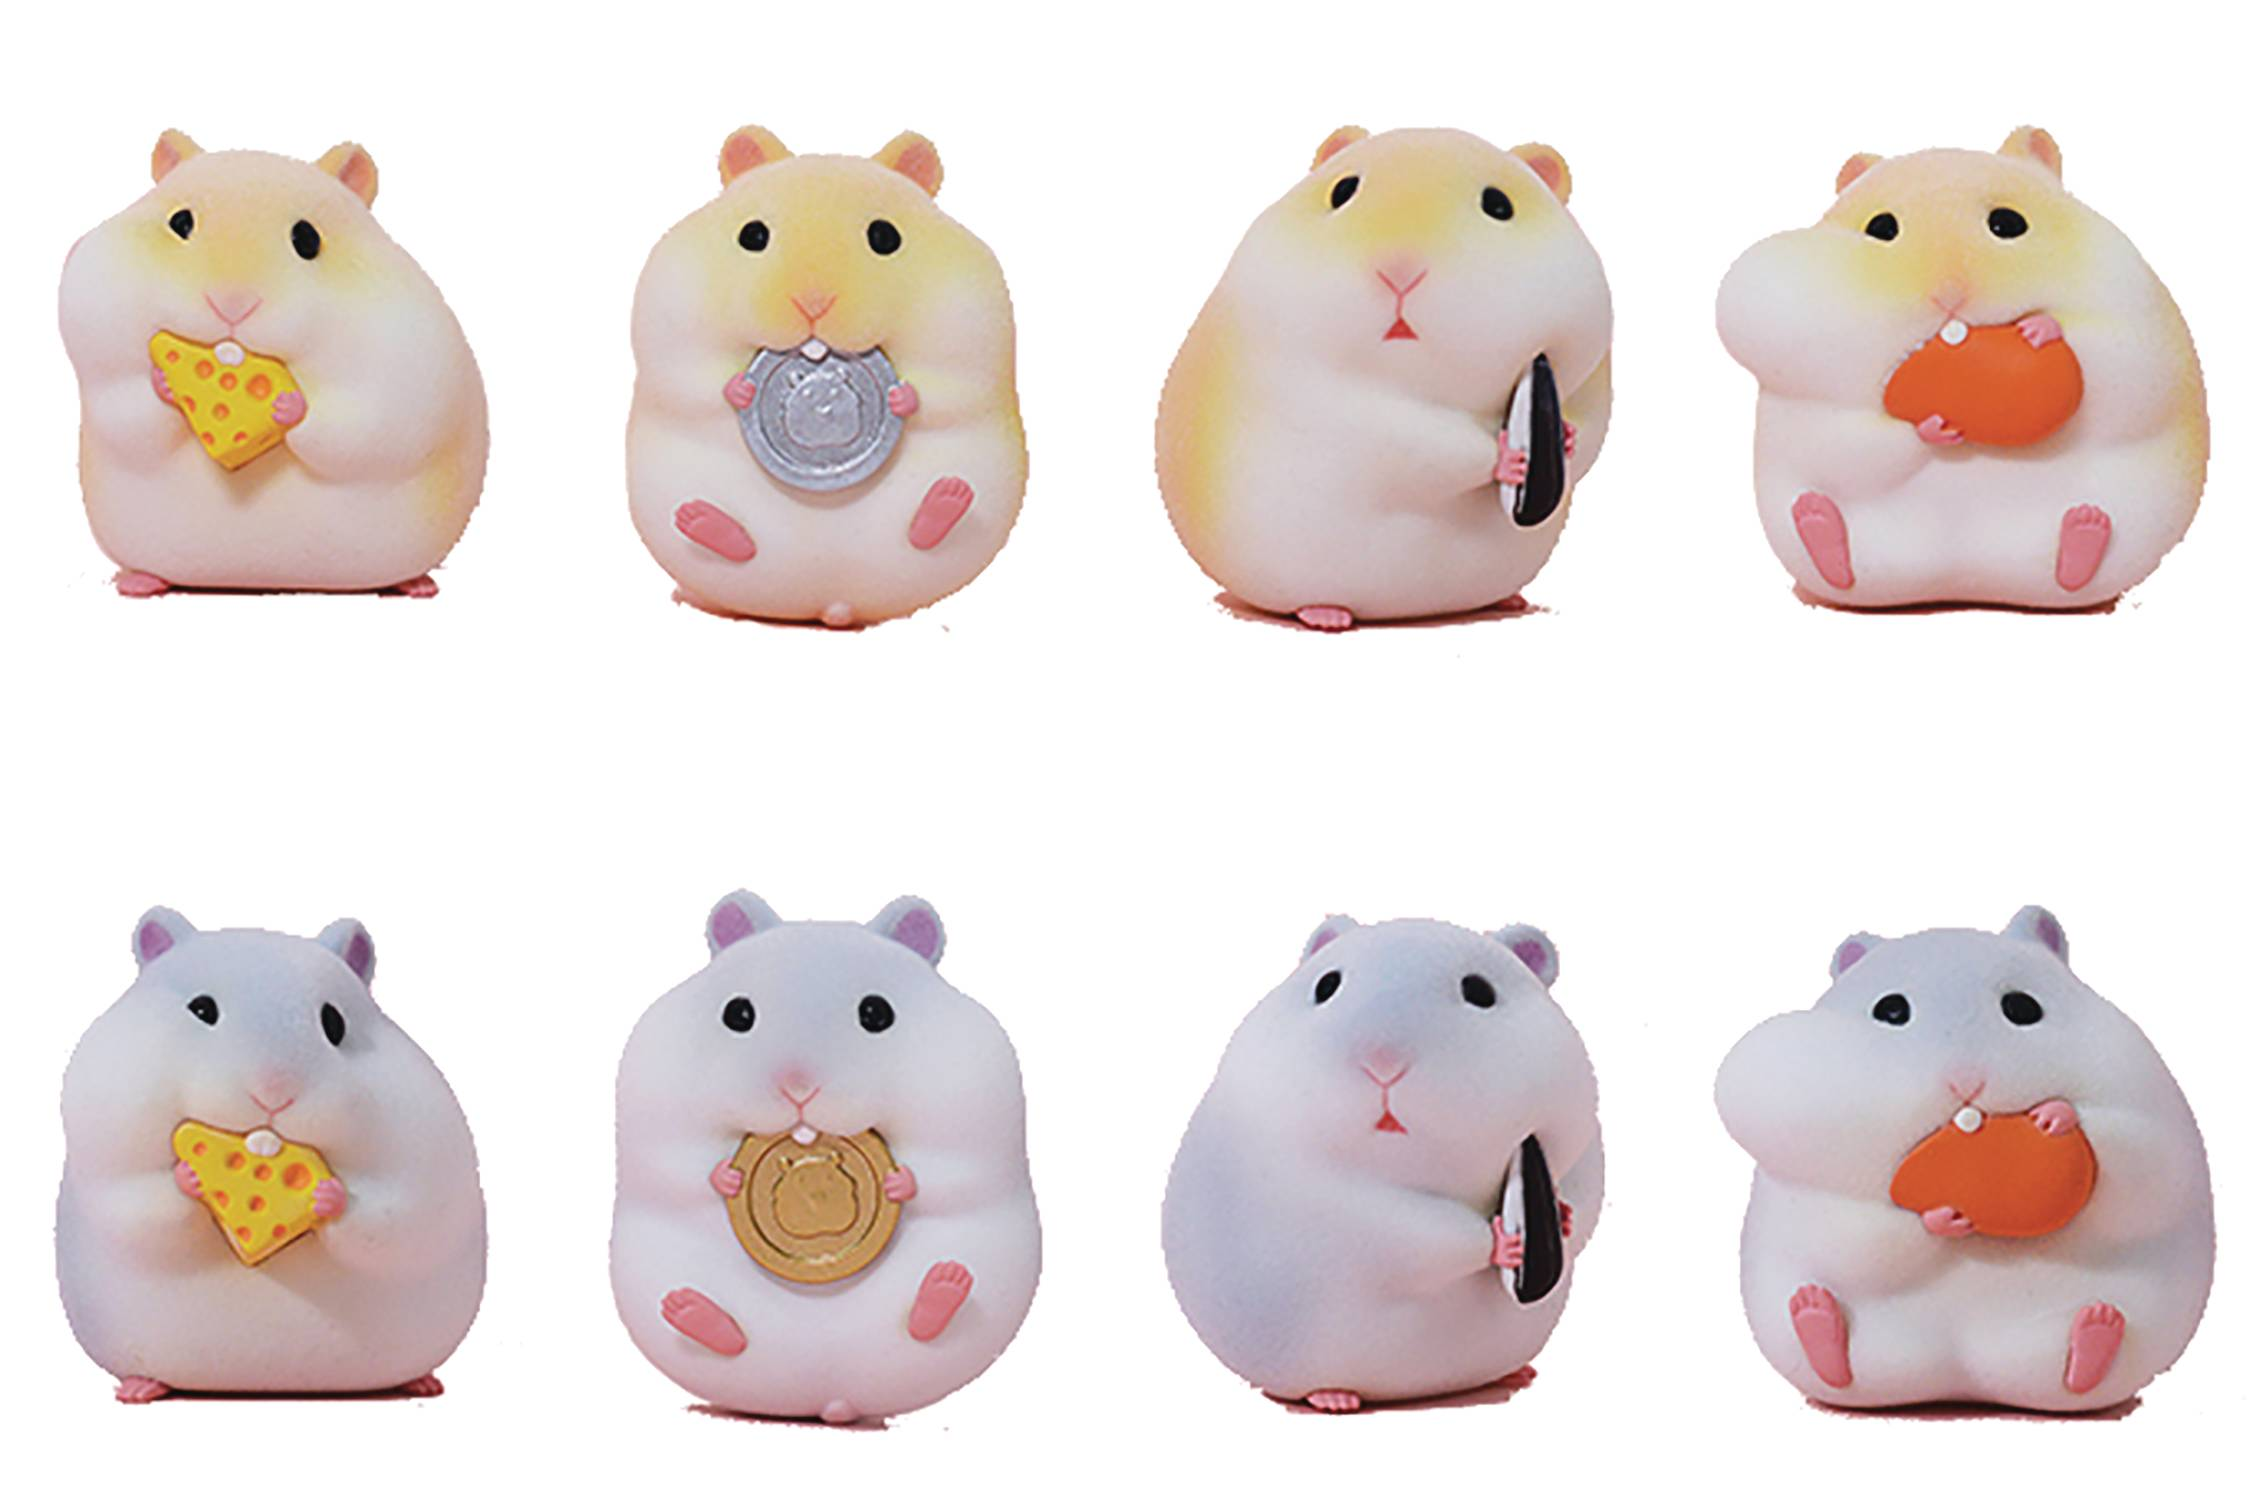 THE GLUTTONOUS HAMSTERS 8PC TRADING FIG BMB DIS